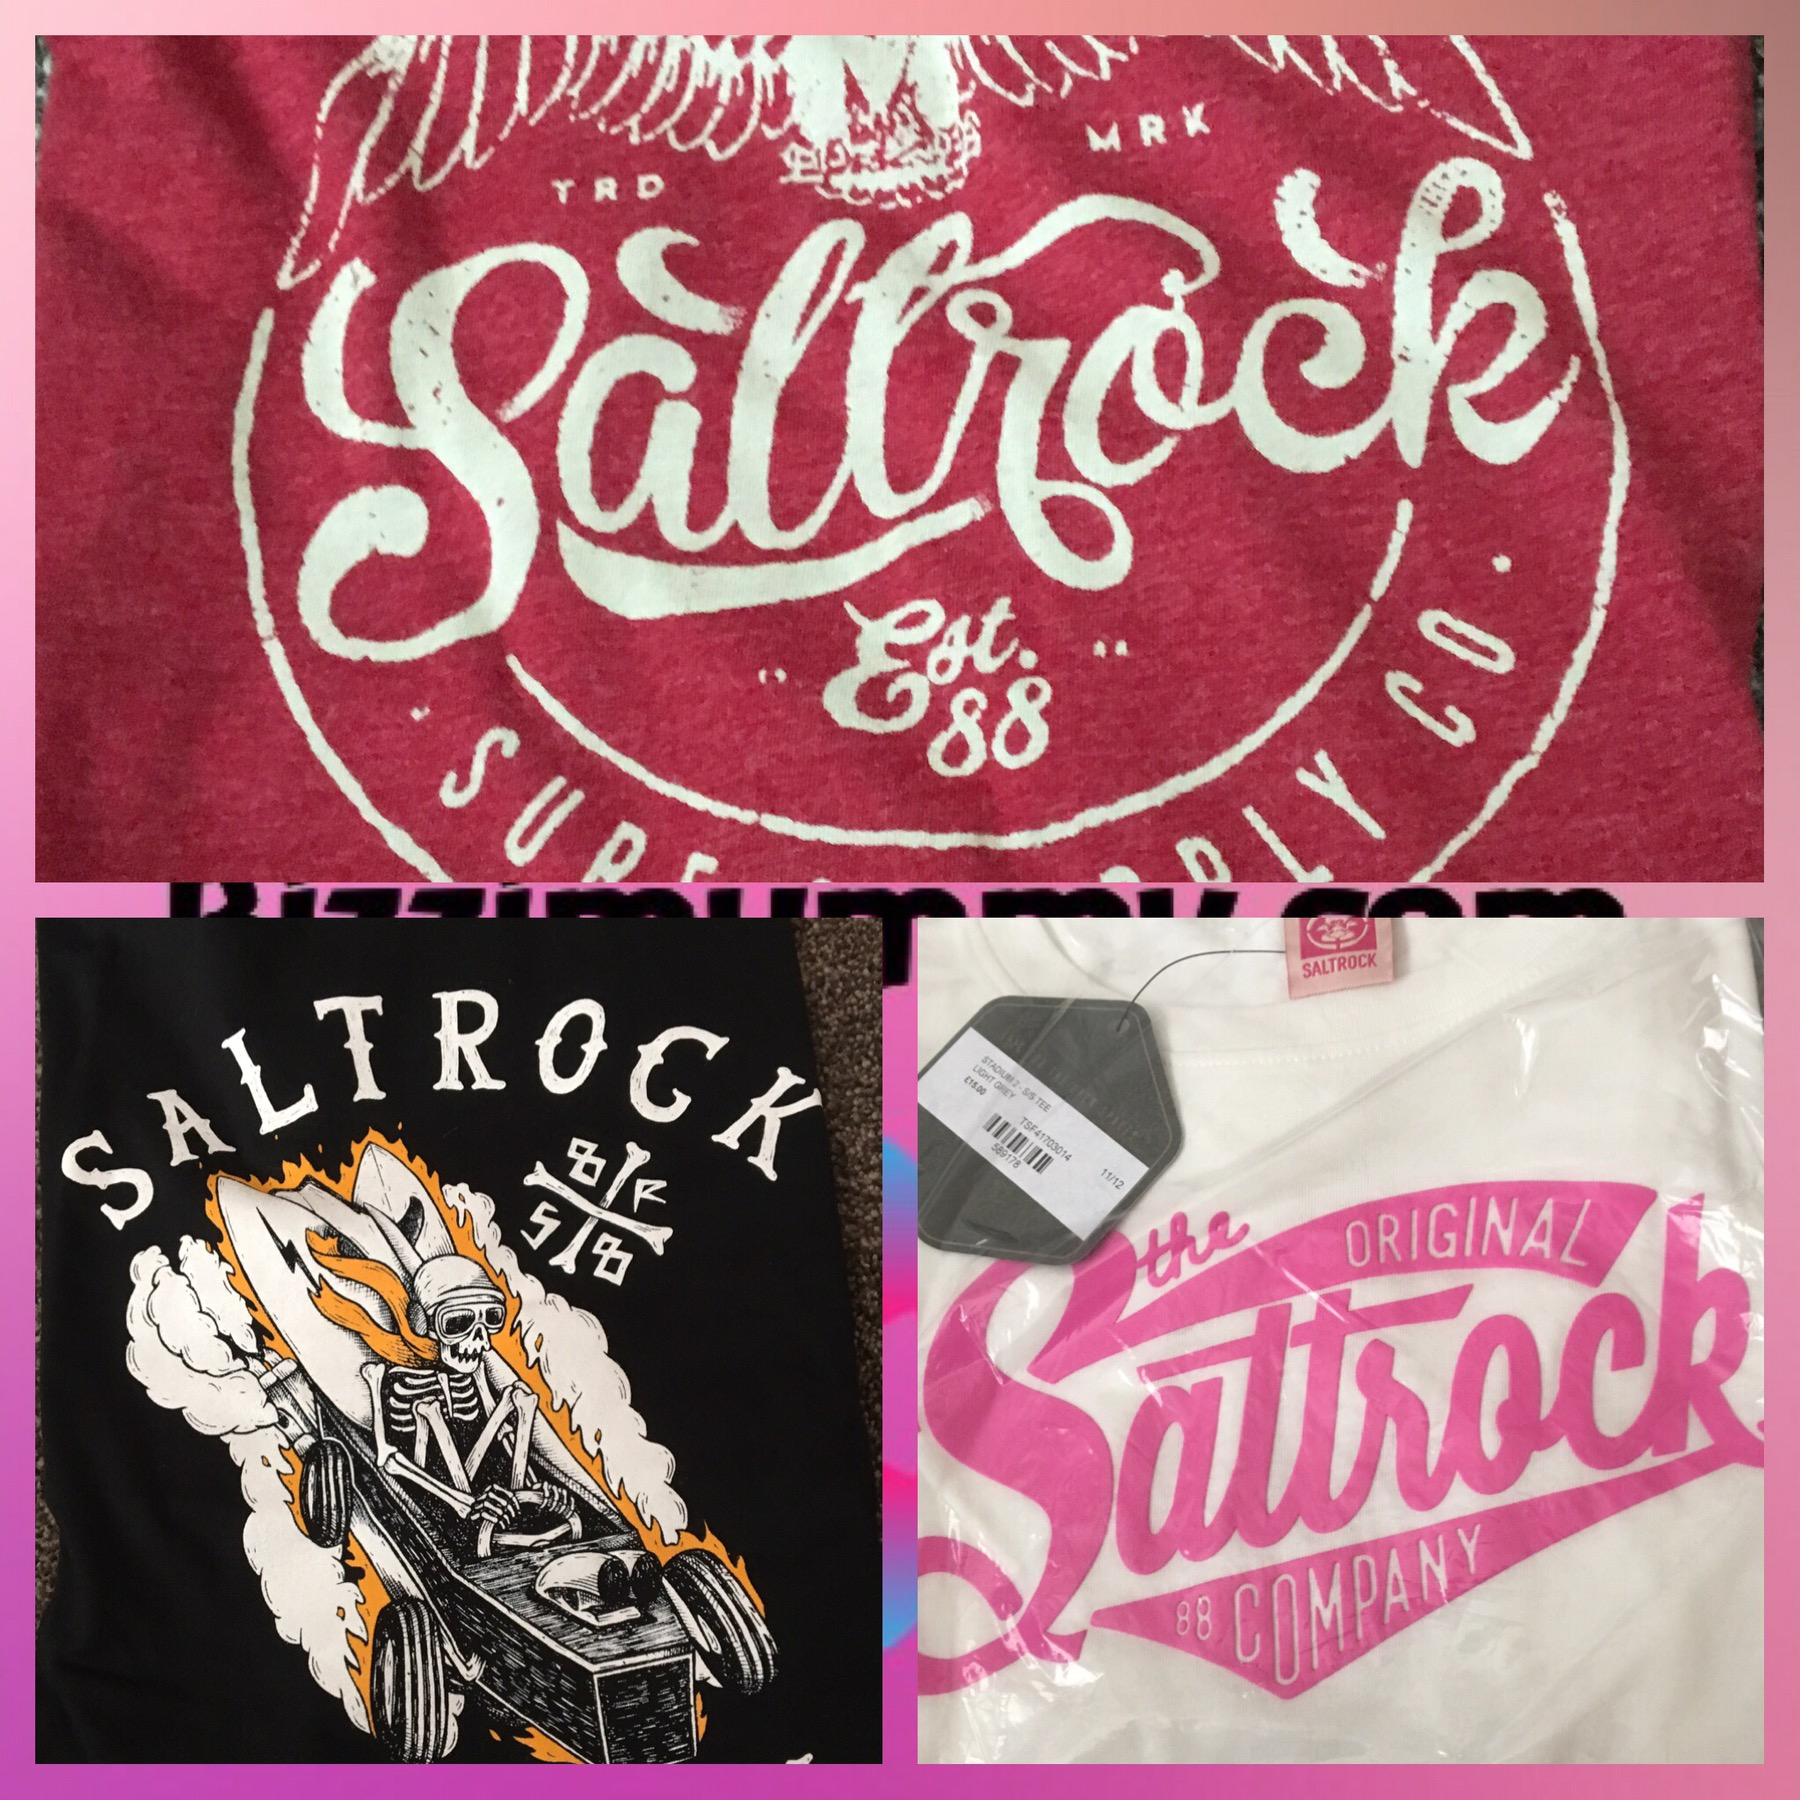 Shirt design near me - Saltrock Is Now A North Devon Based Beach Lifestyle Clothing Brand Which Has 39 Stores Across The South West Of The Uk If Like Me You Live No Where Near